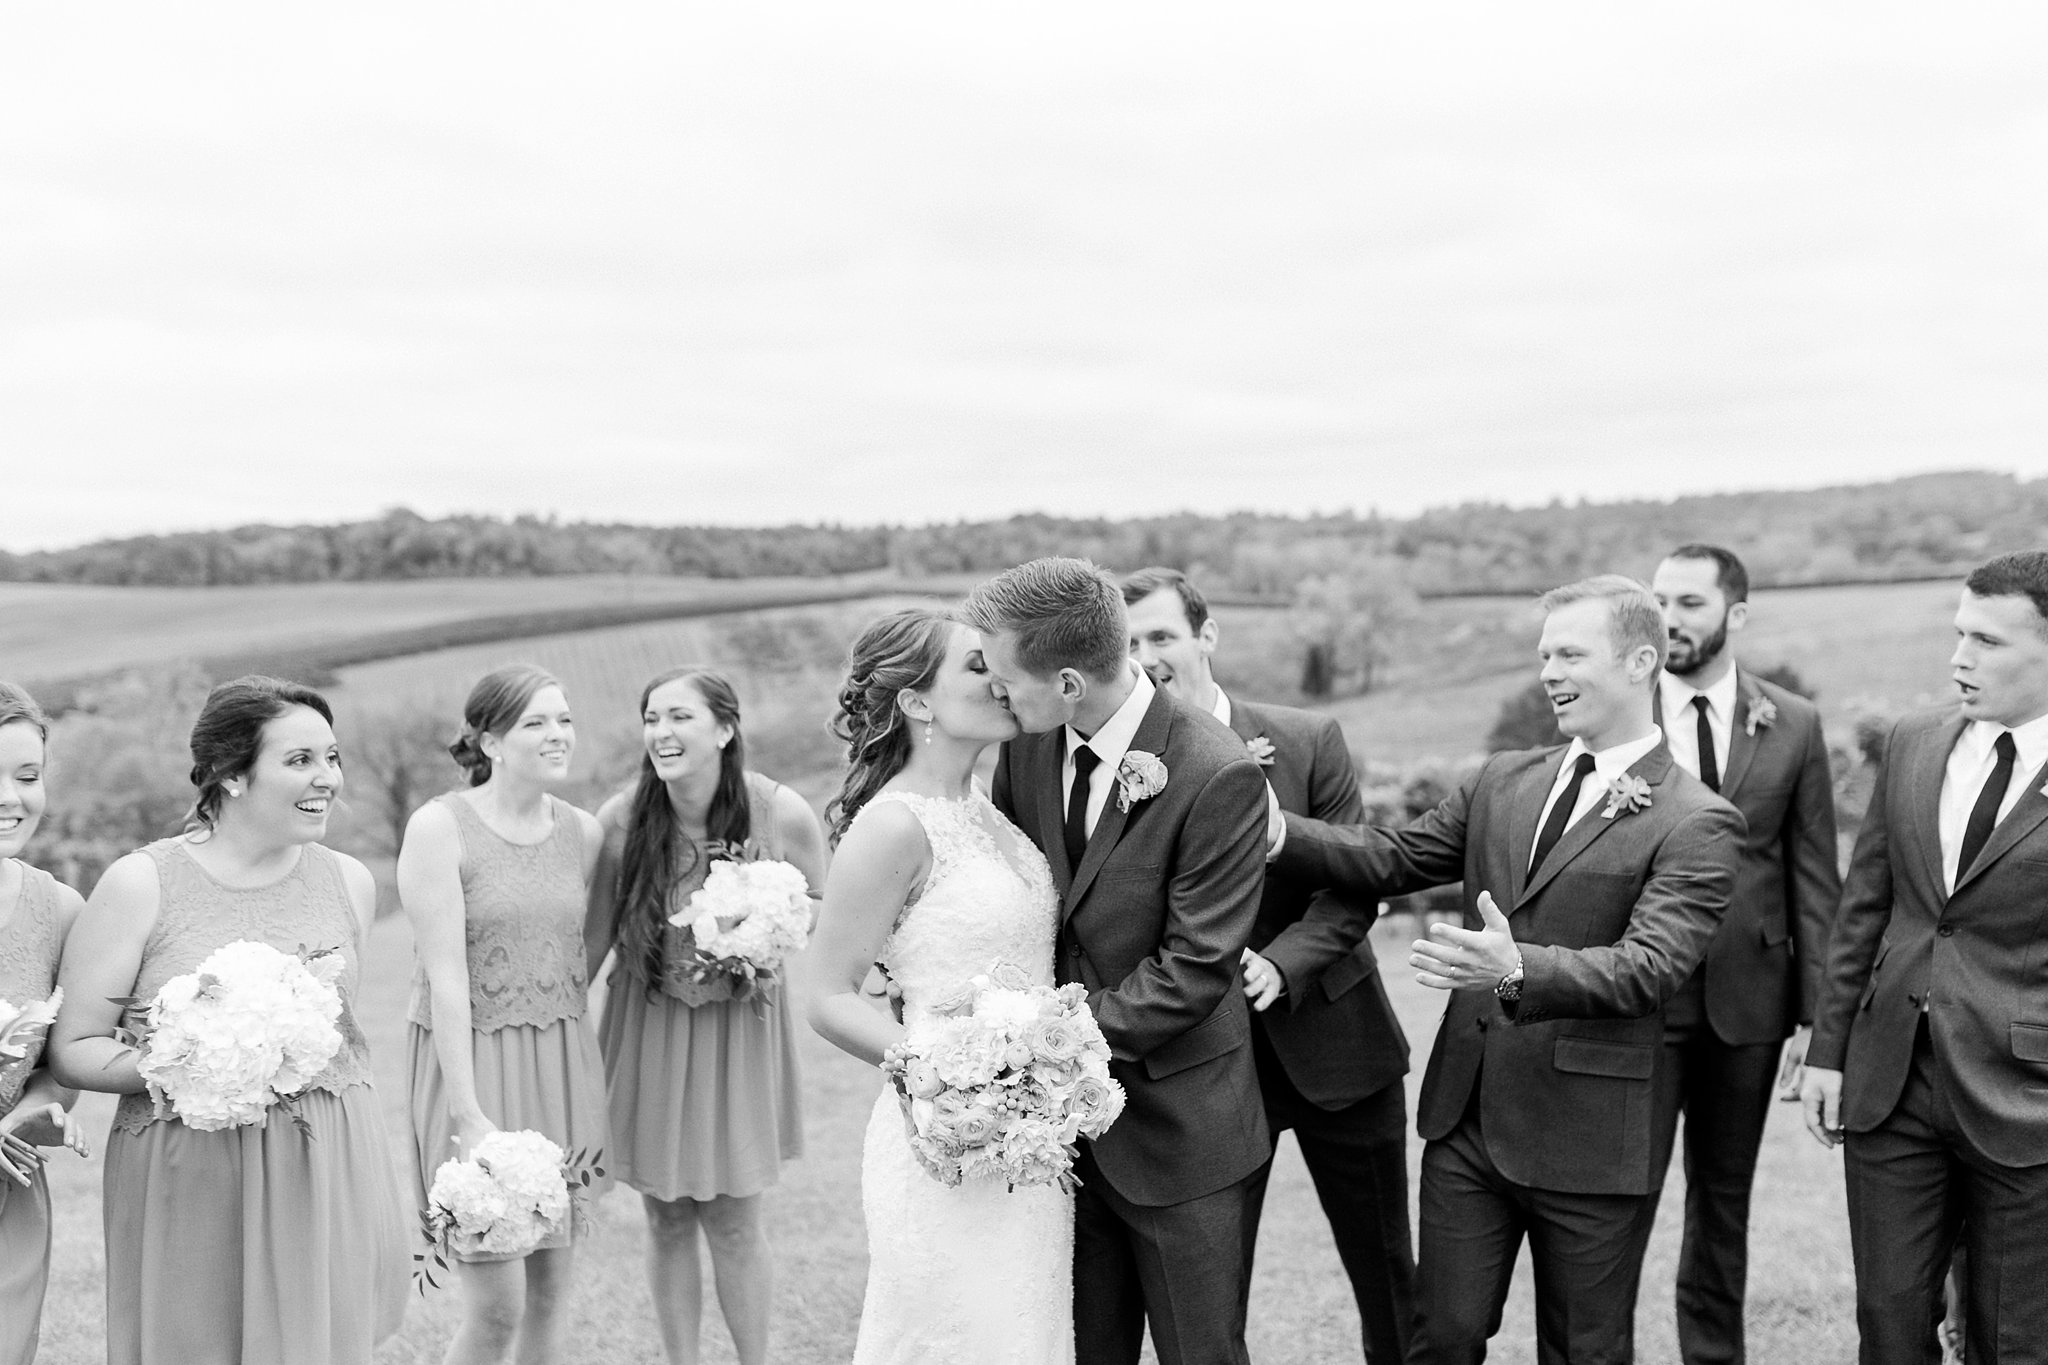 Stone Tower Winery Wedding Photos Virginia Wedding Photographer Megan Kelsey Photography Sam & Angela-188.jpg